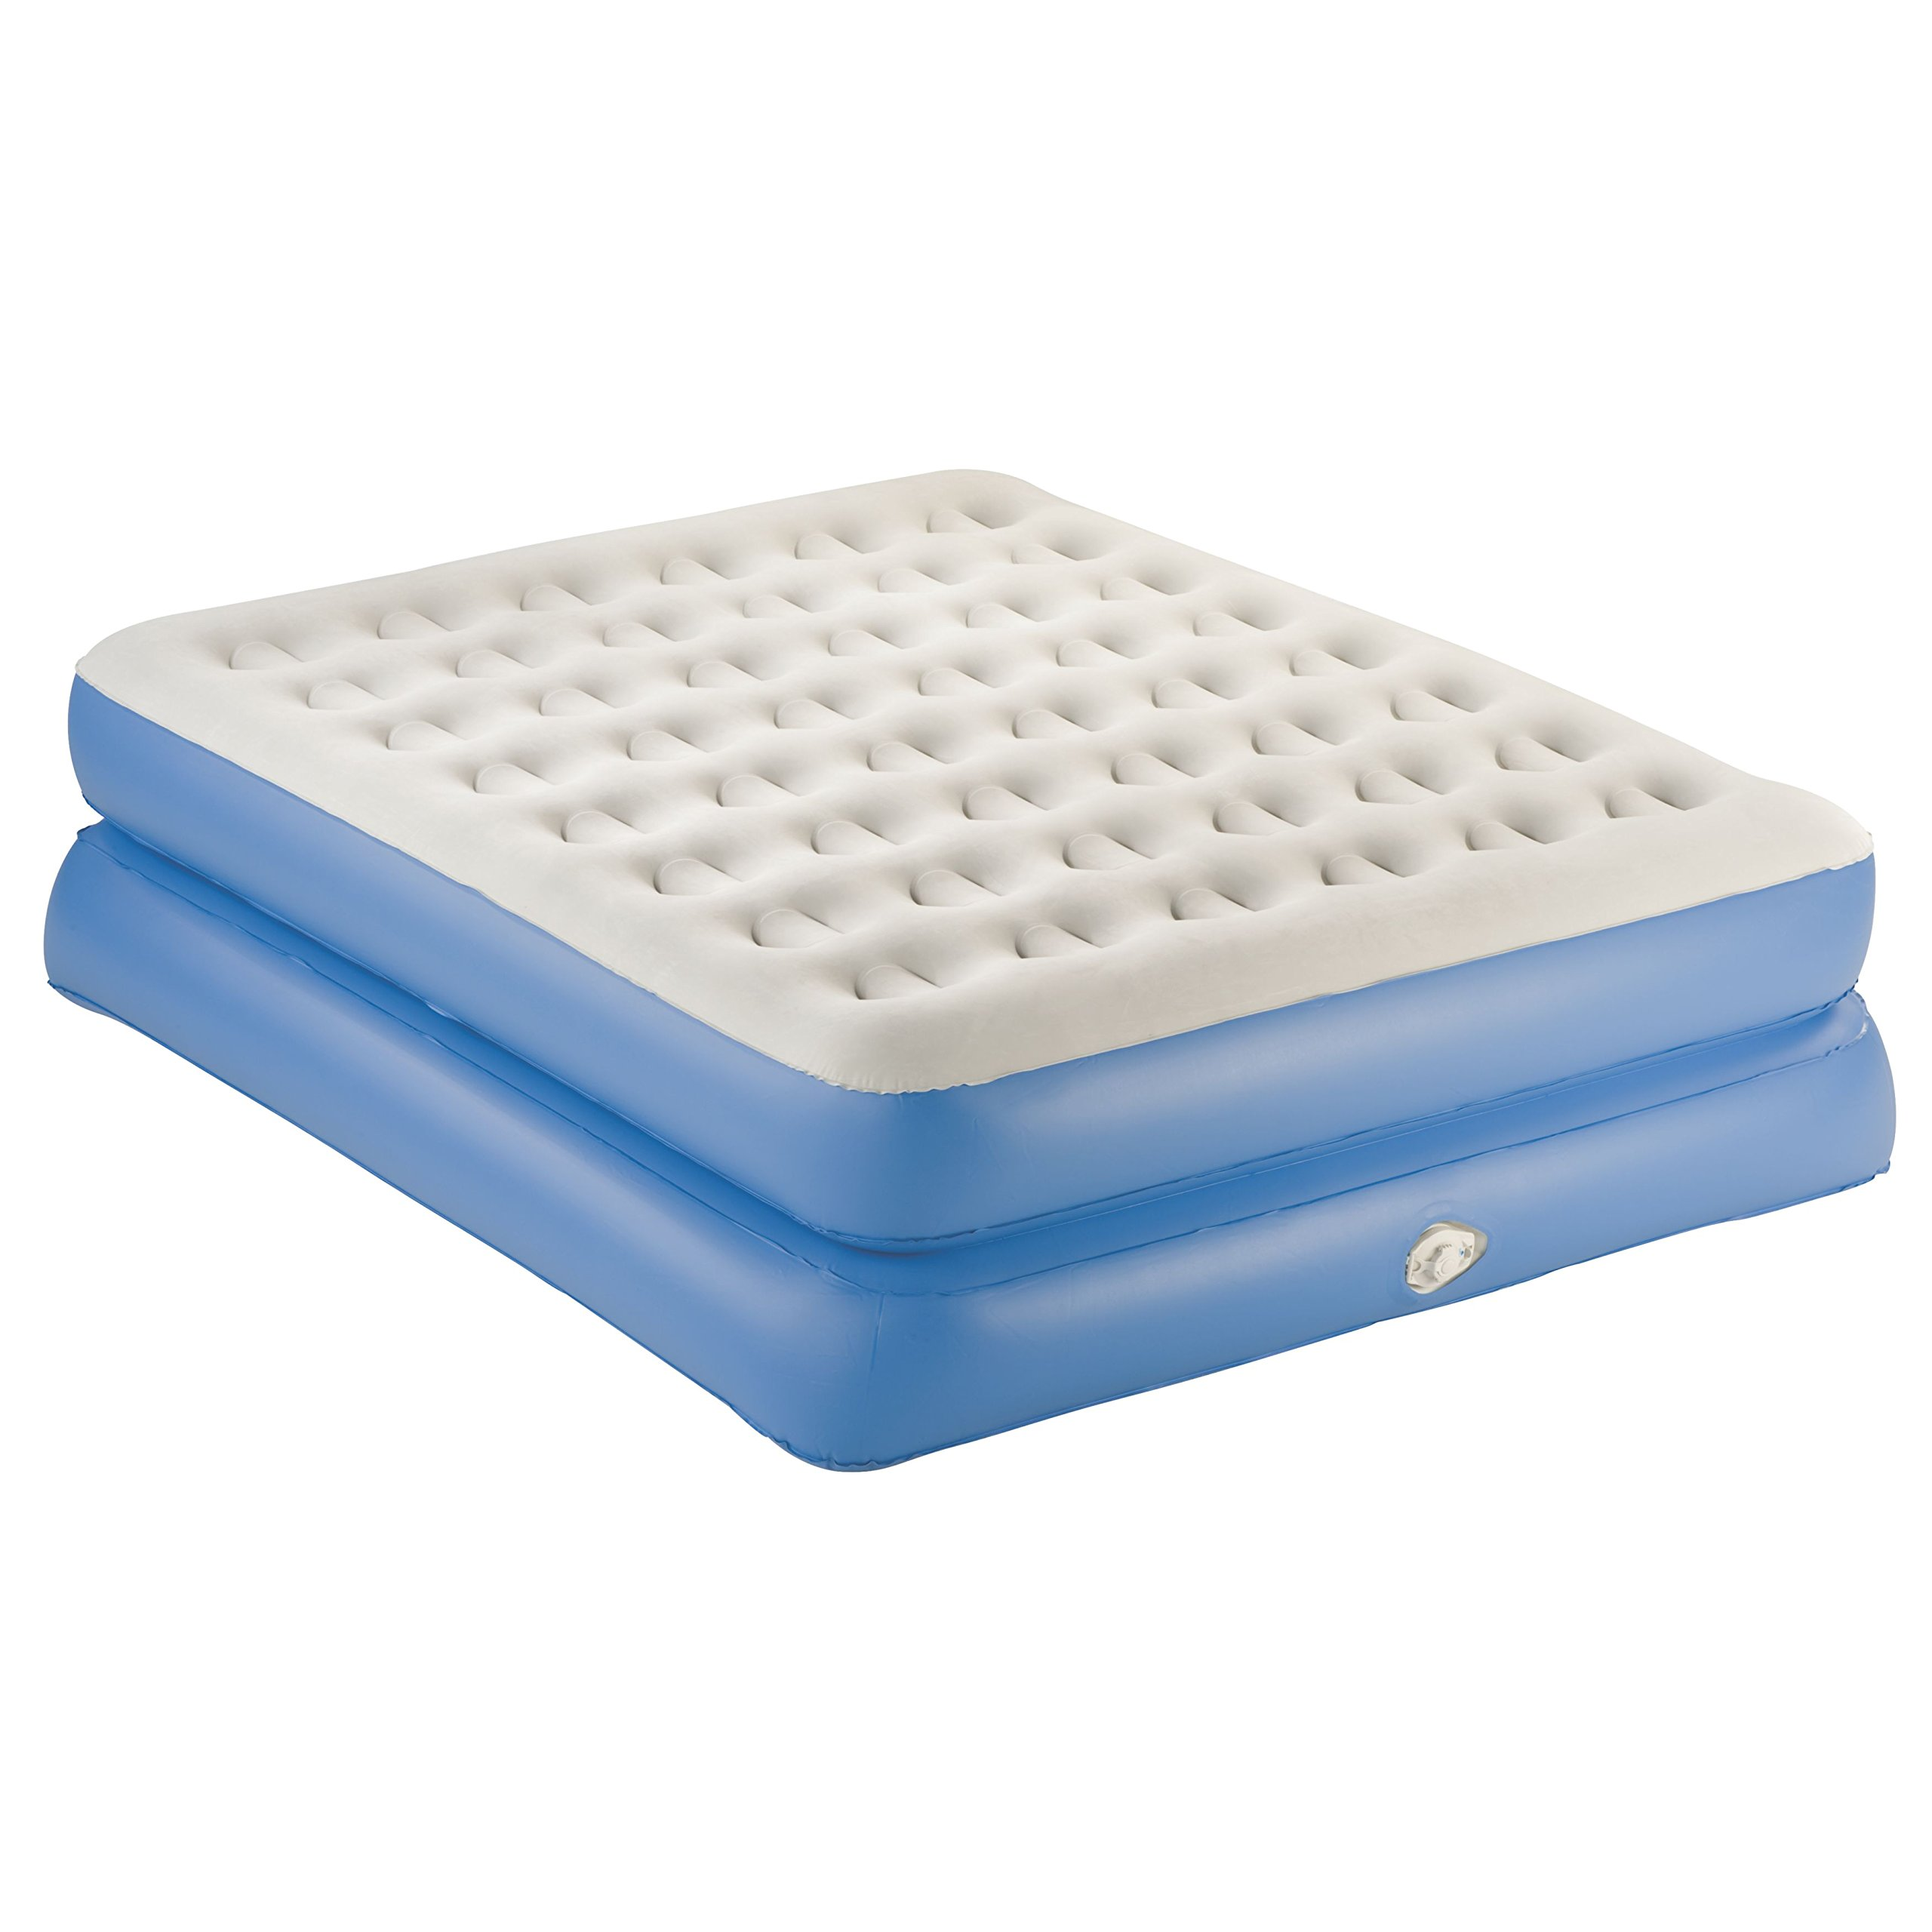 Queen Size Aerobed 88122 Commercial Grade Air Inflatable Mattress